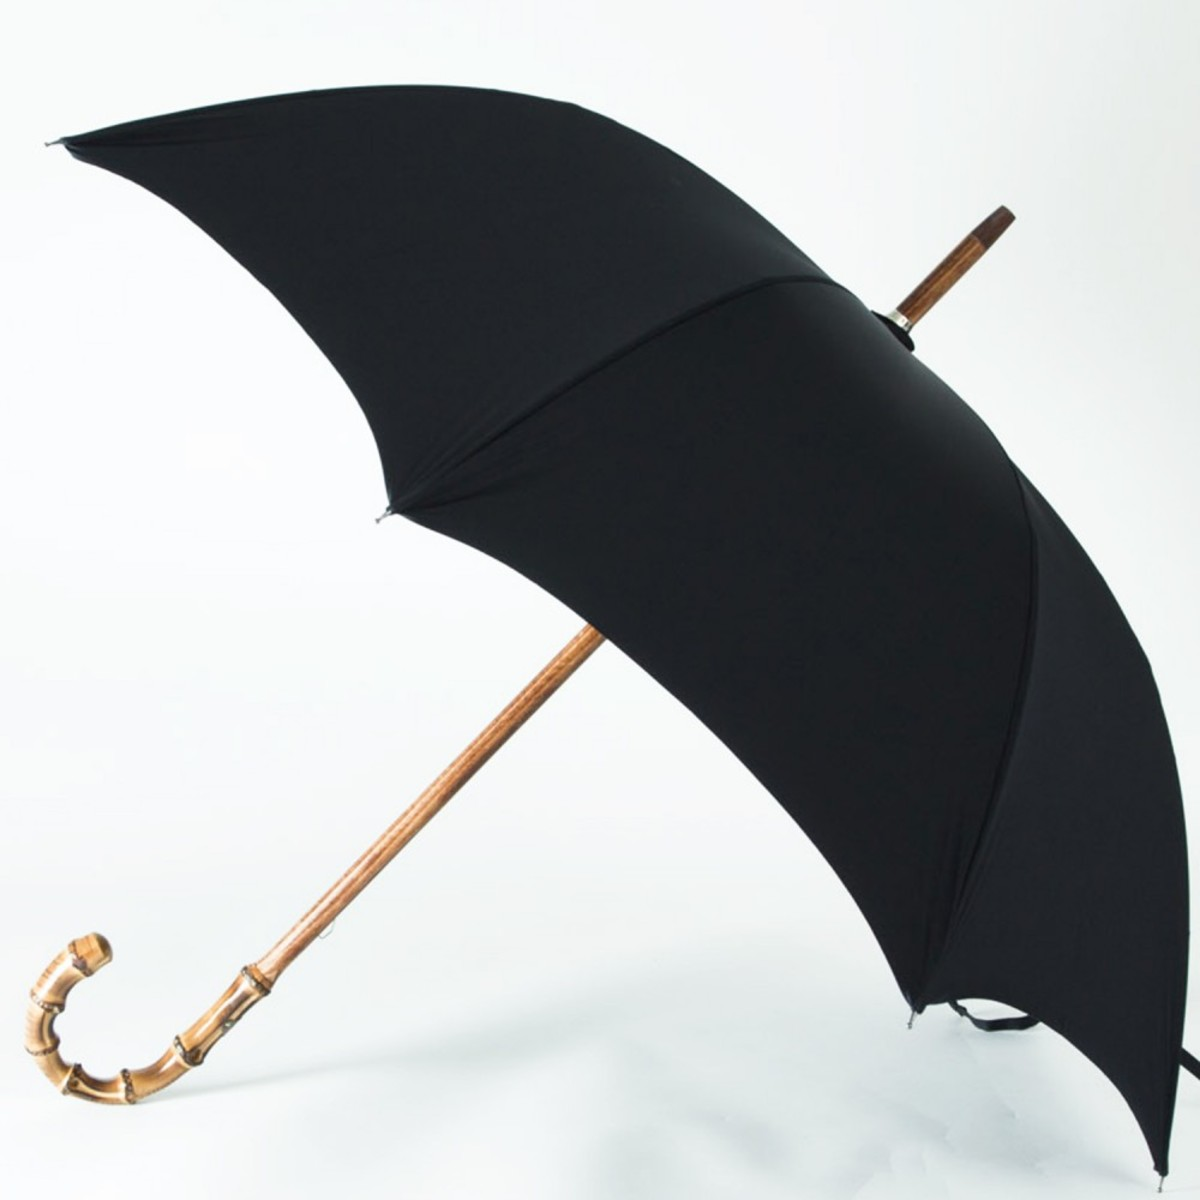 mf-black-umbrella-bamboo-handle-horn-tip-5.jpg